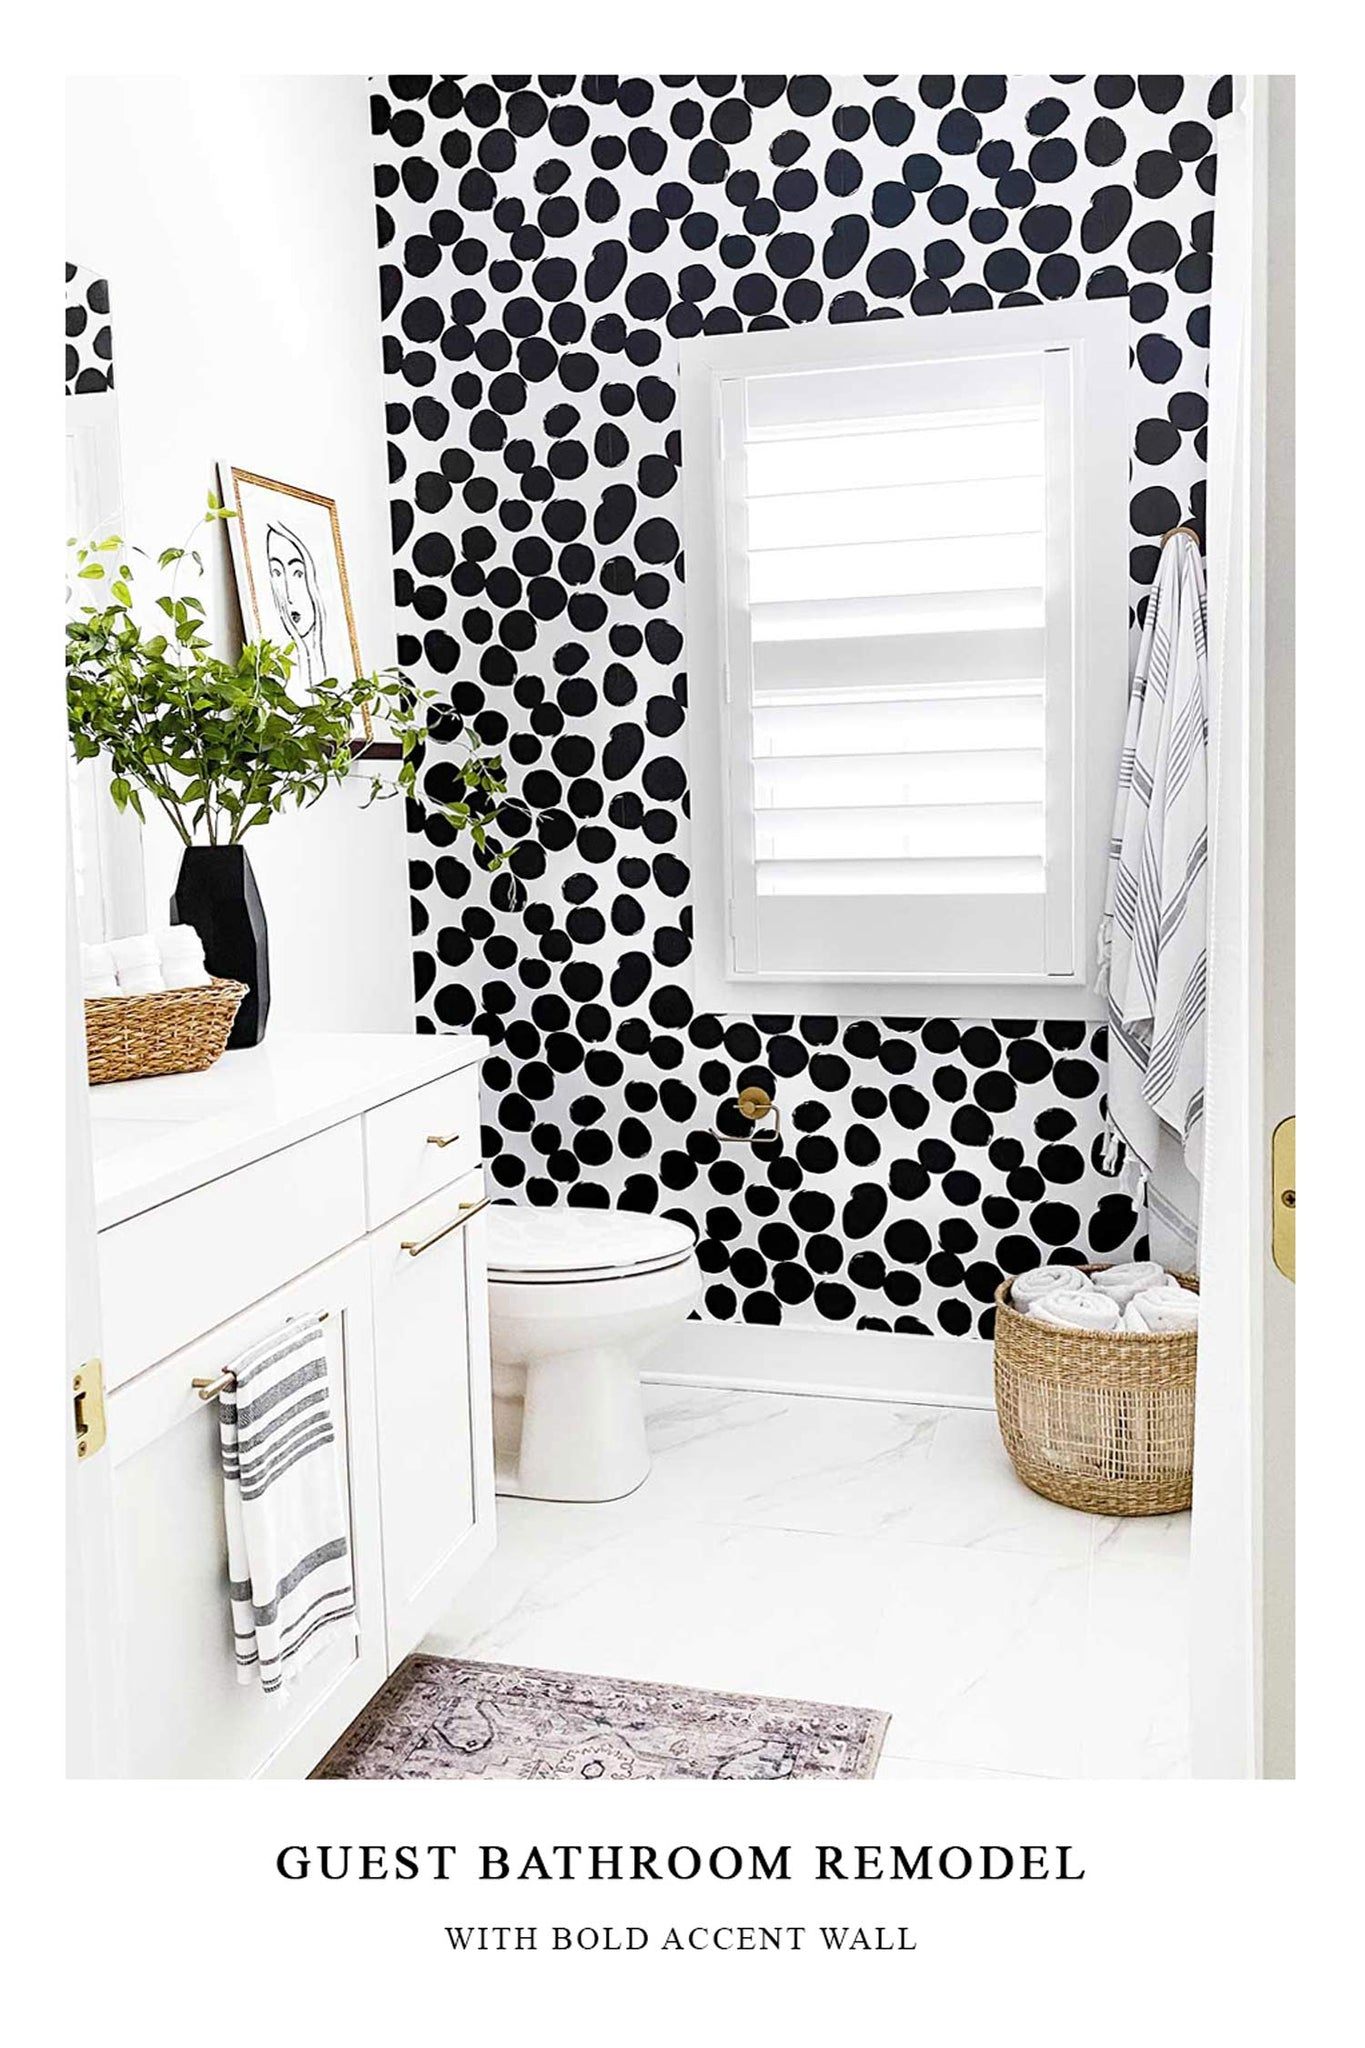 Bold black and white bathroom interior remodel with removable wallpaper